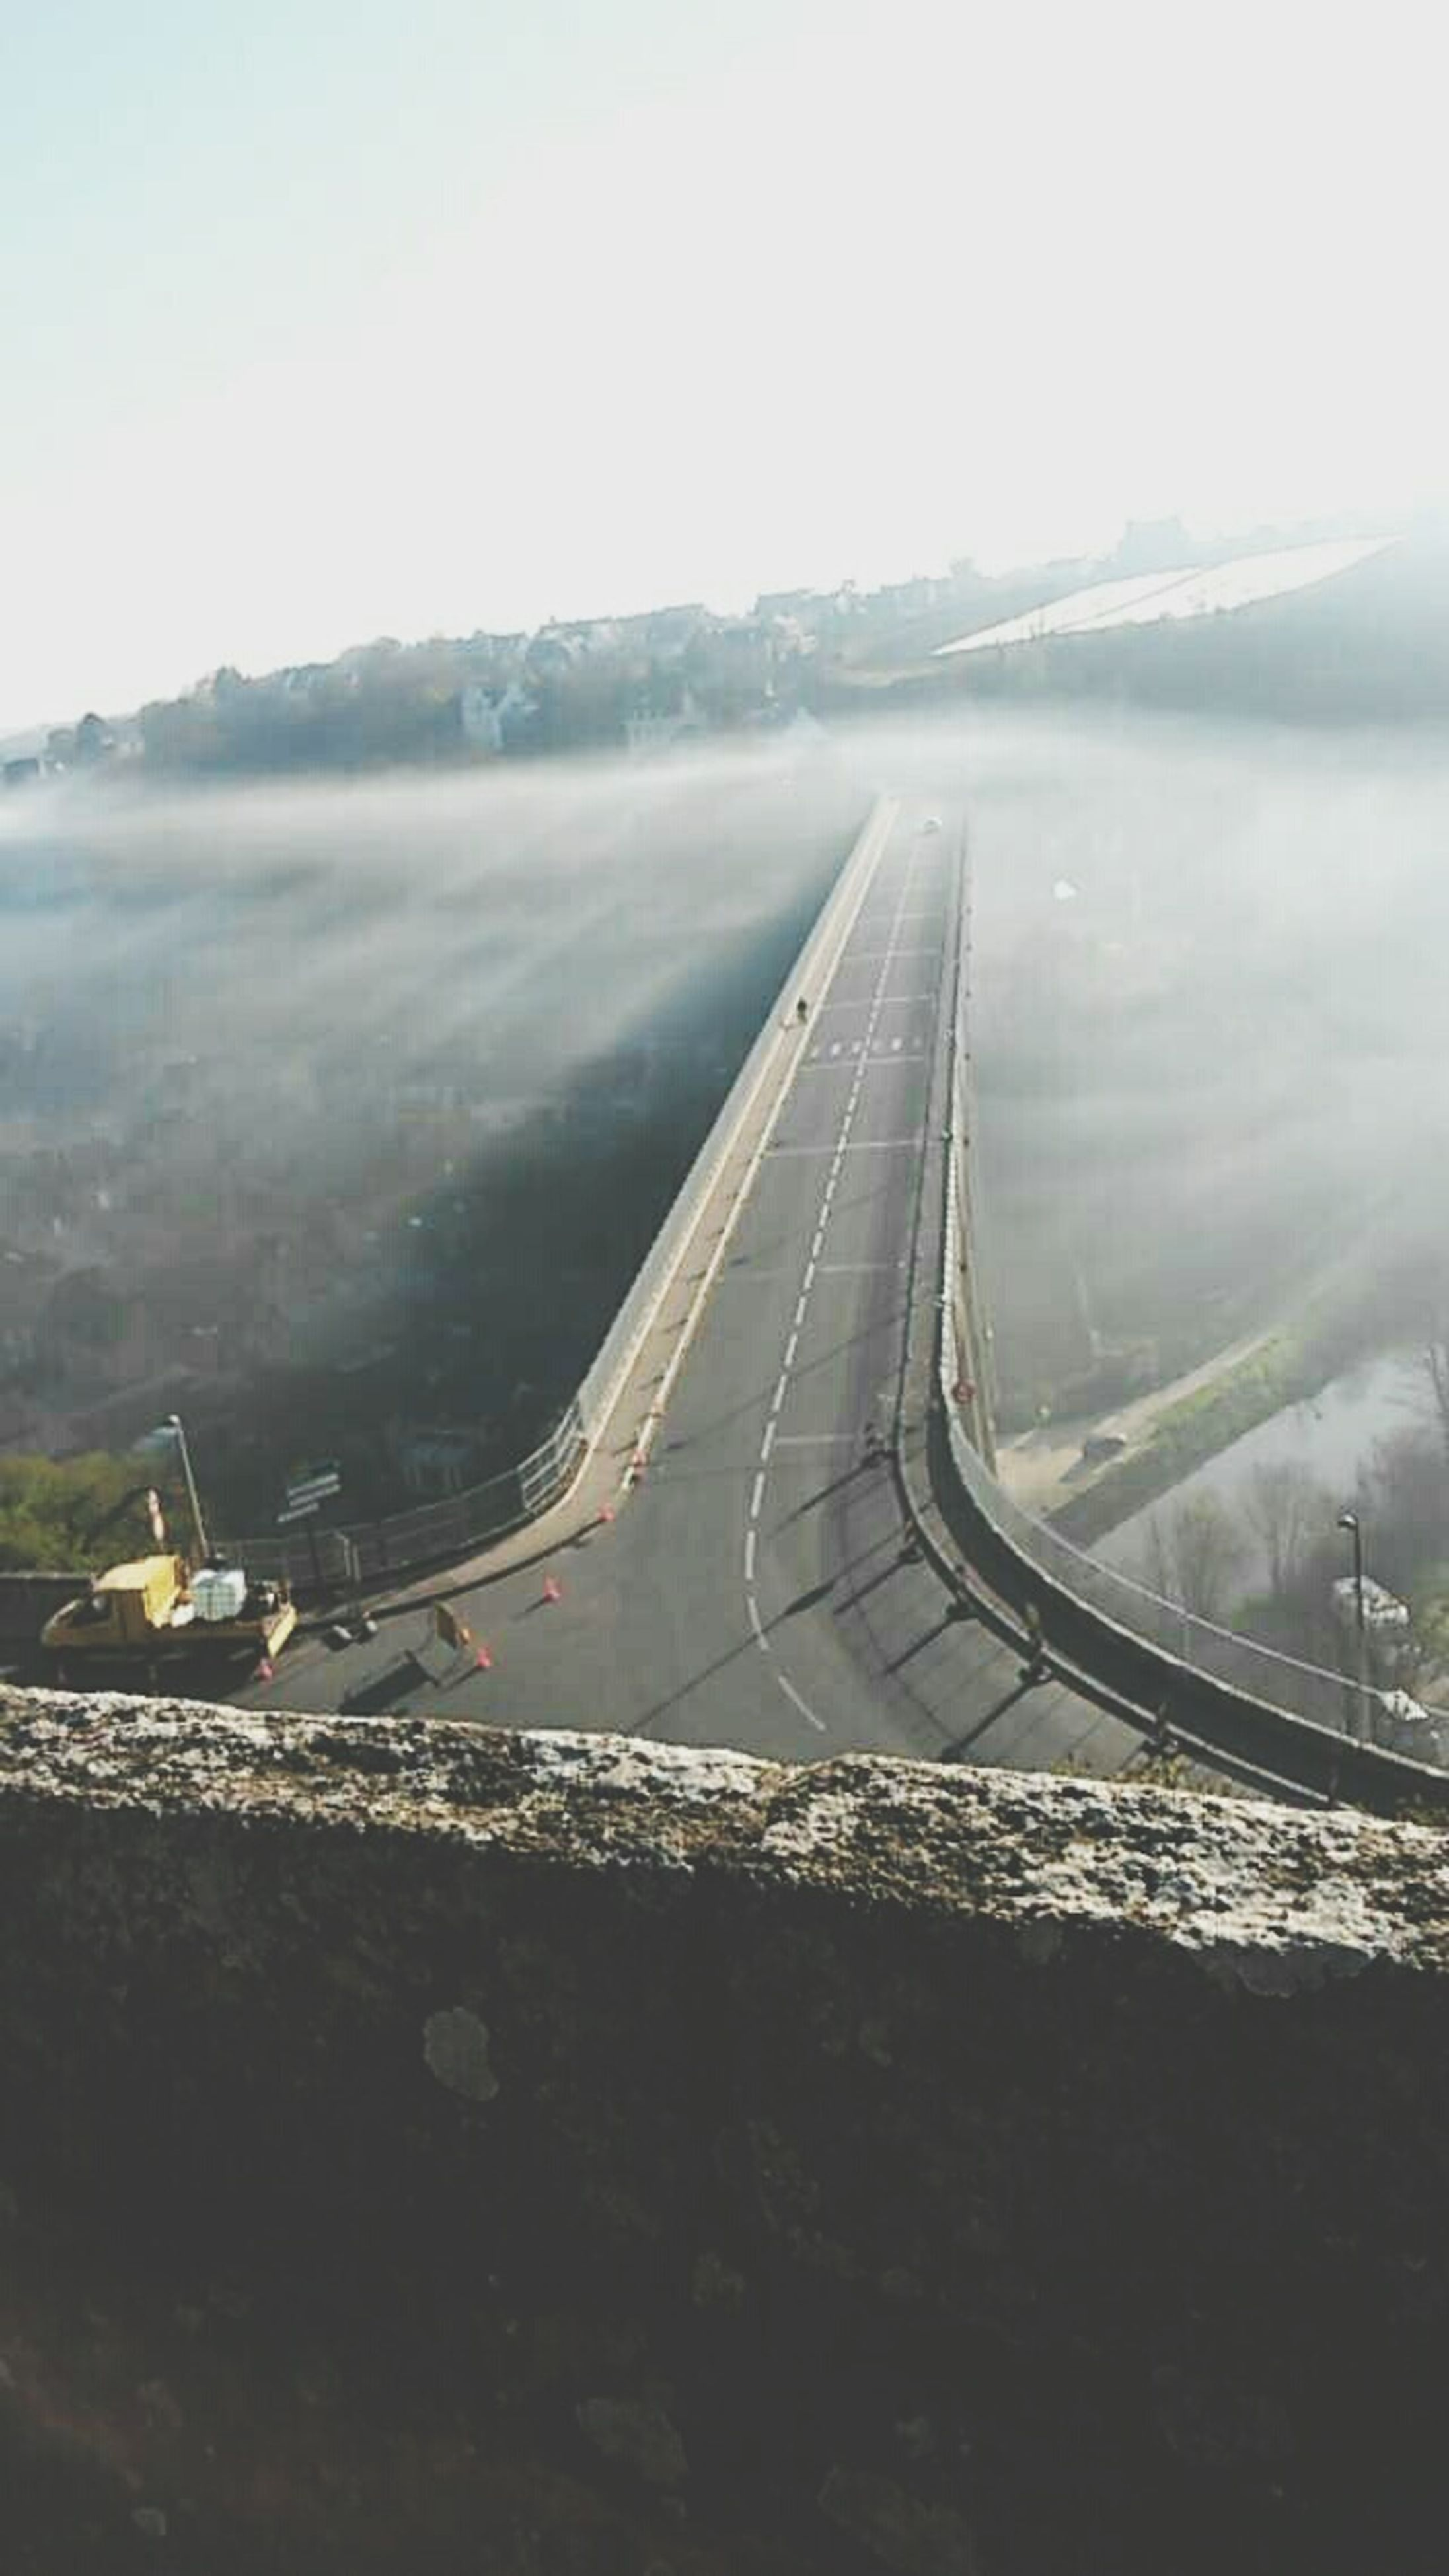 transportation, landscape, mode of transport, mountain, aerial view, sky, clear sky, scenics, nature, high angle view, travel, tranquility, tranquil scene, beauty in nature, road, outdoors, no people, copy space, day